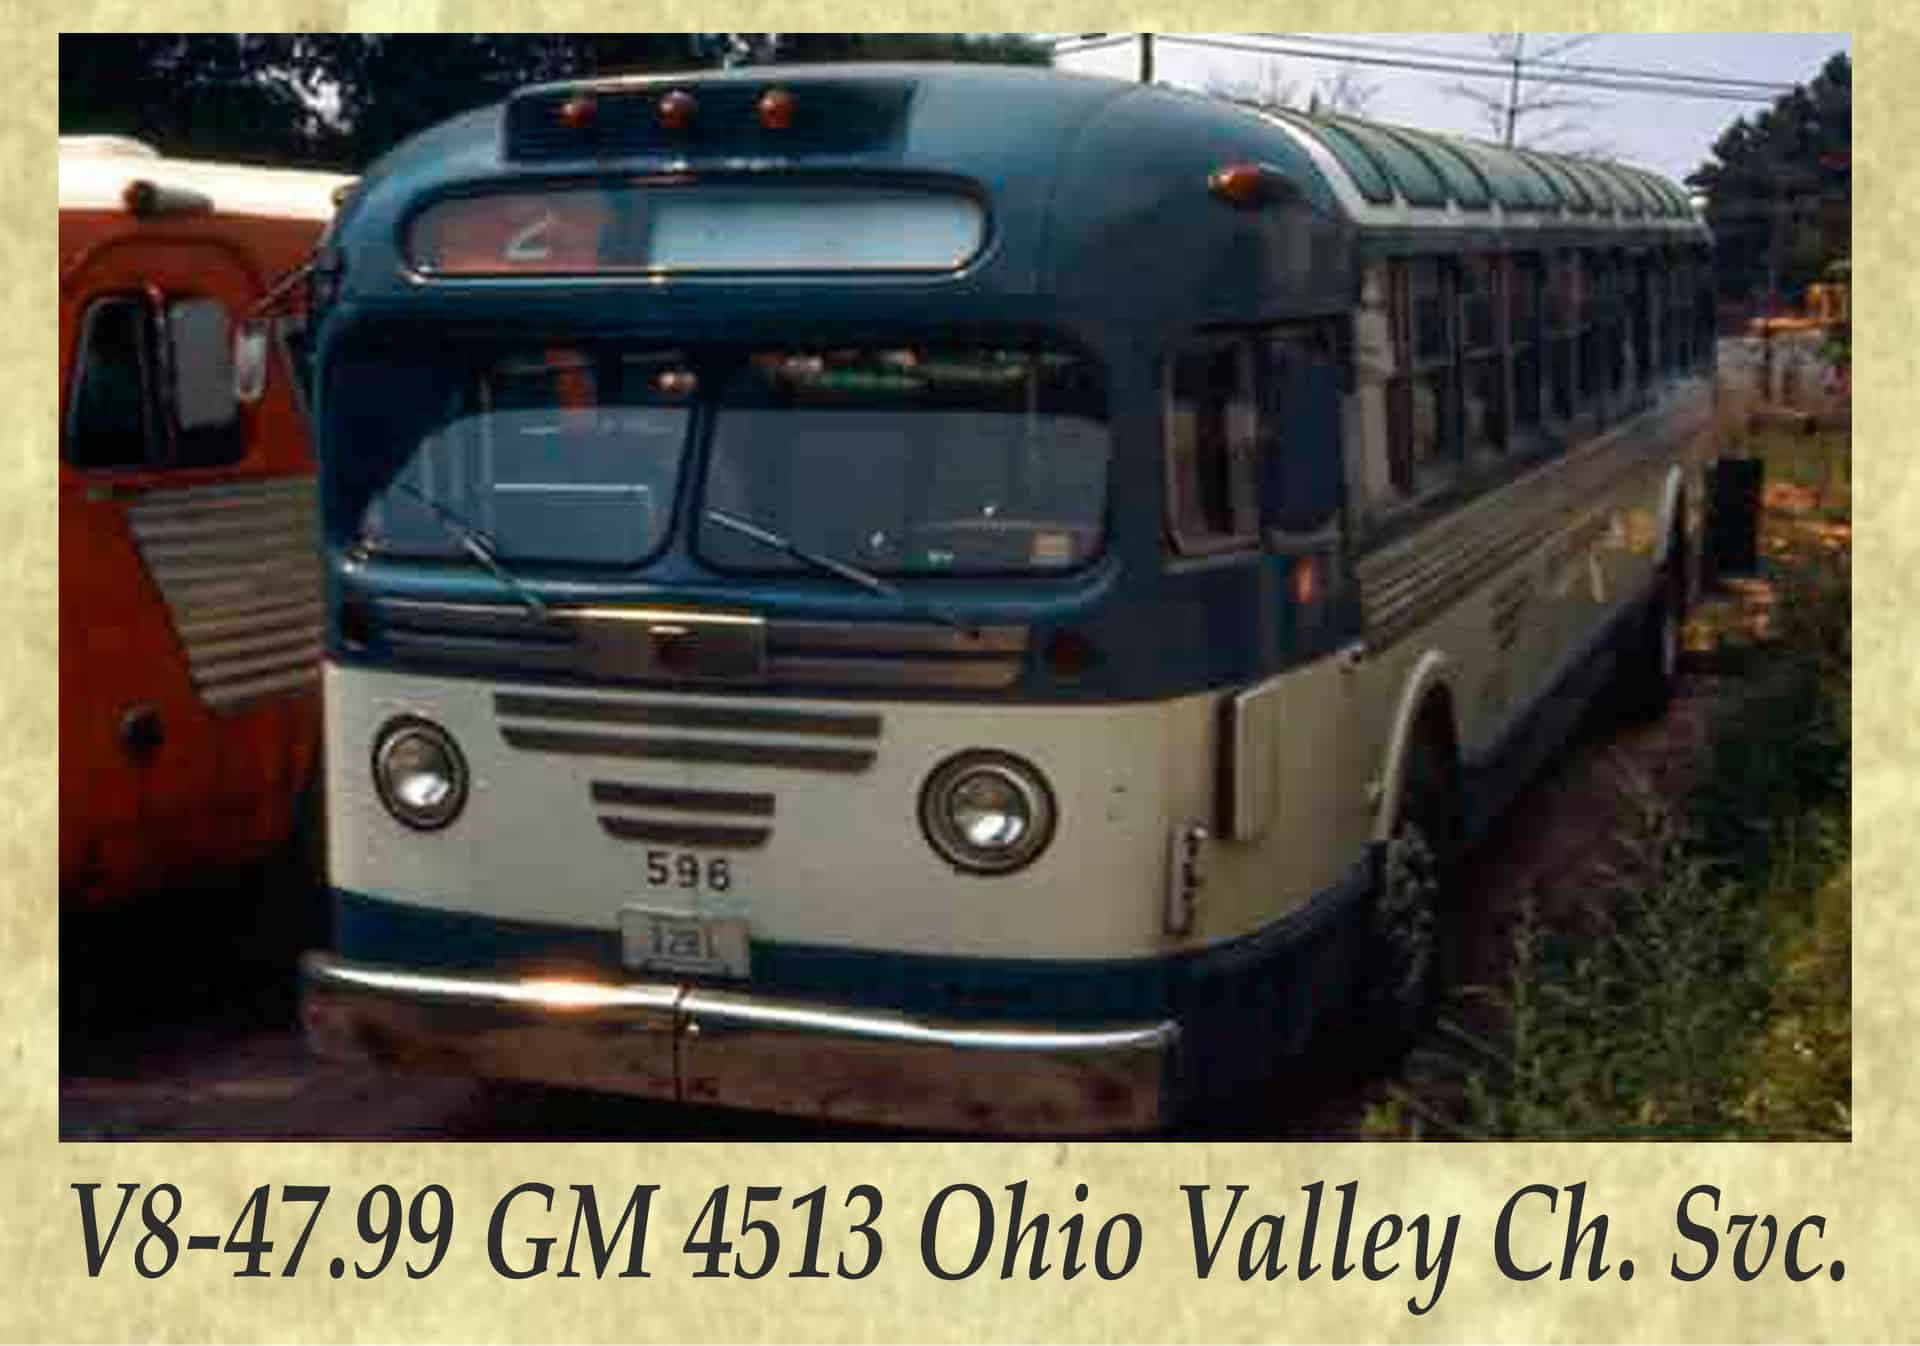 V8-47.99 GM 4513 Ohio Valley Ch. Svc.